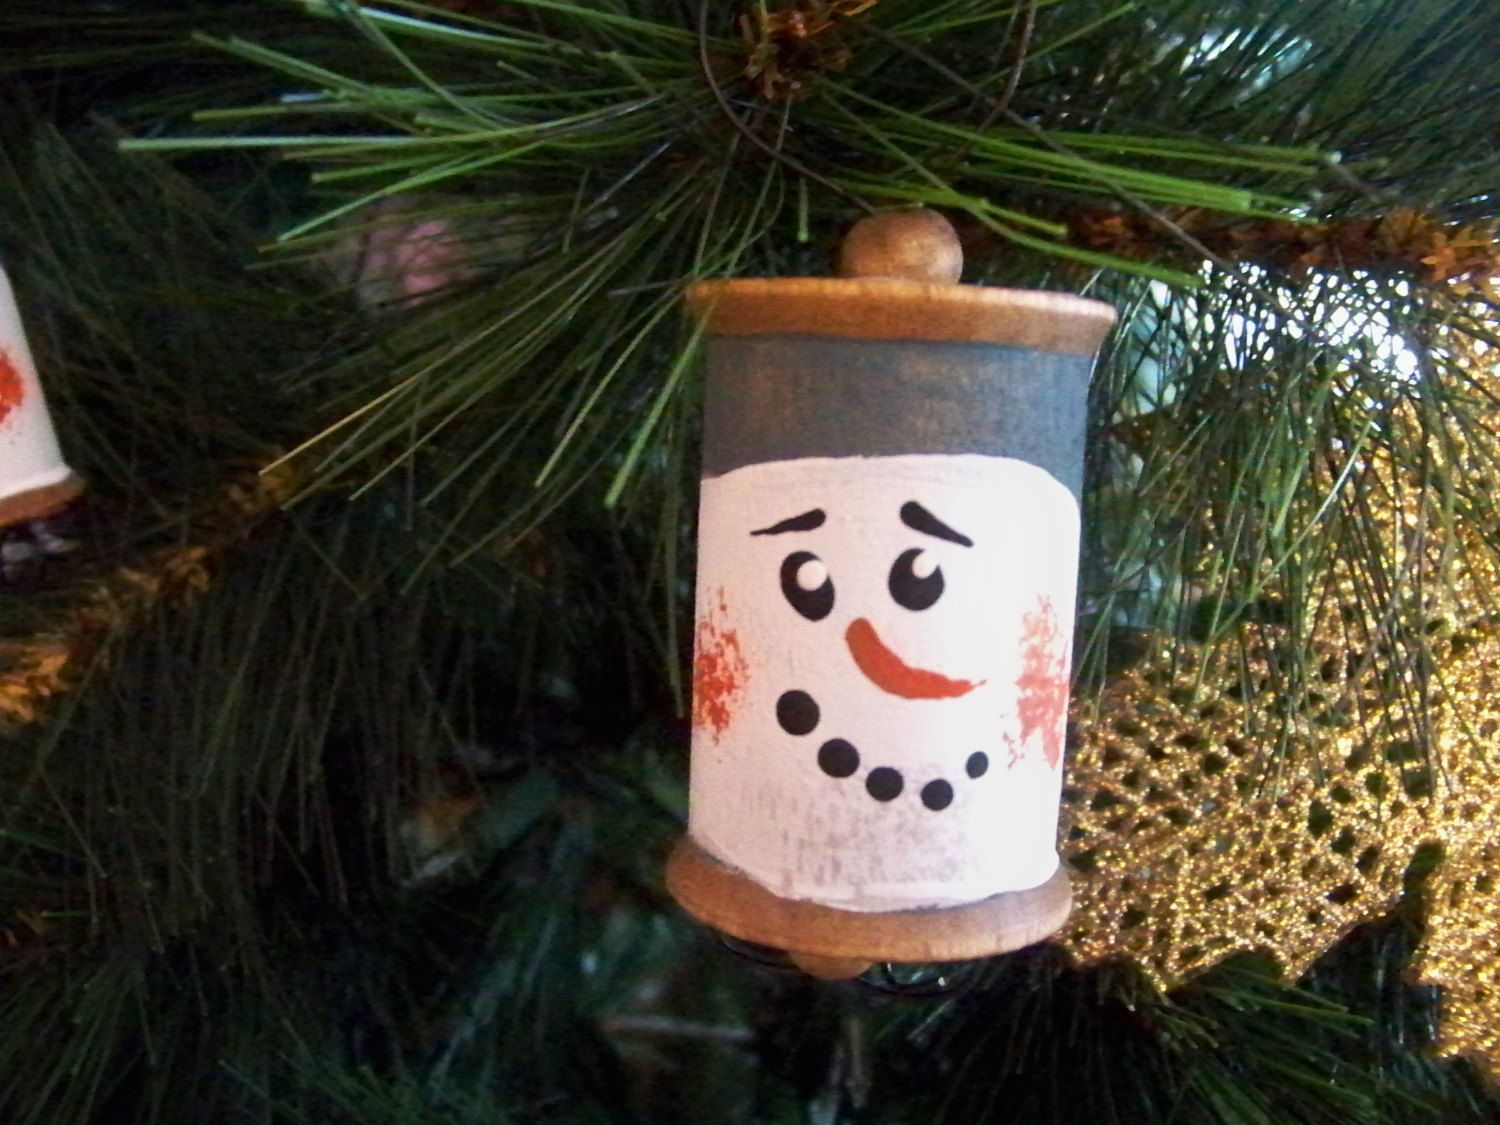 Chunky Wood Spool Snowman Etsy Wood Spool Christmas Crafts Snowman Faces